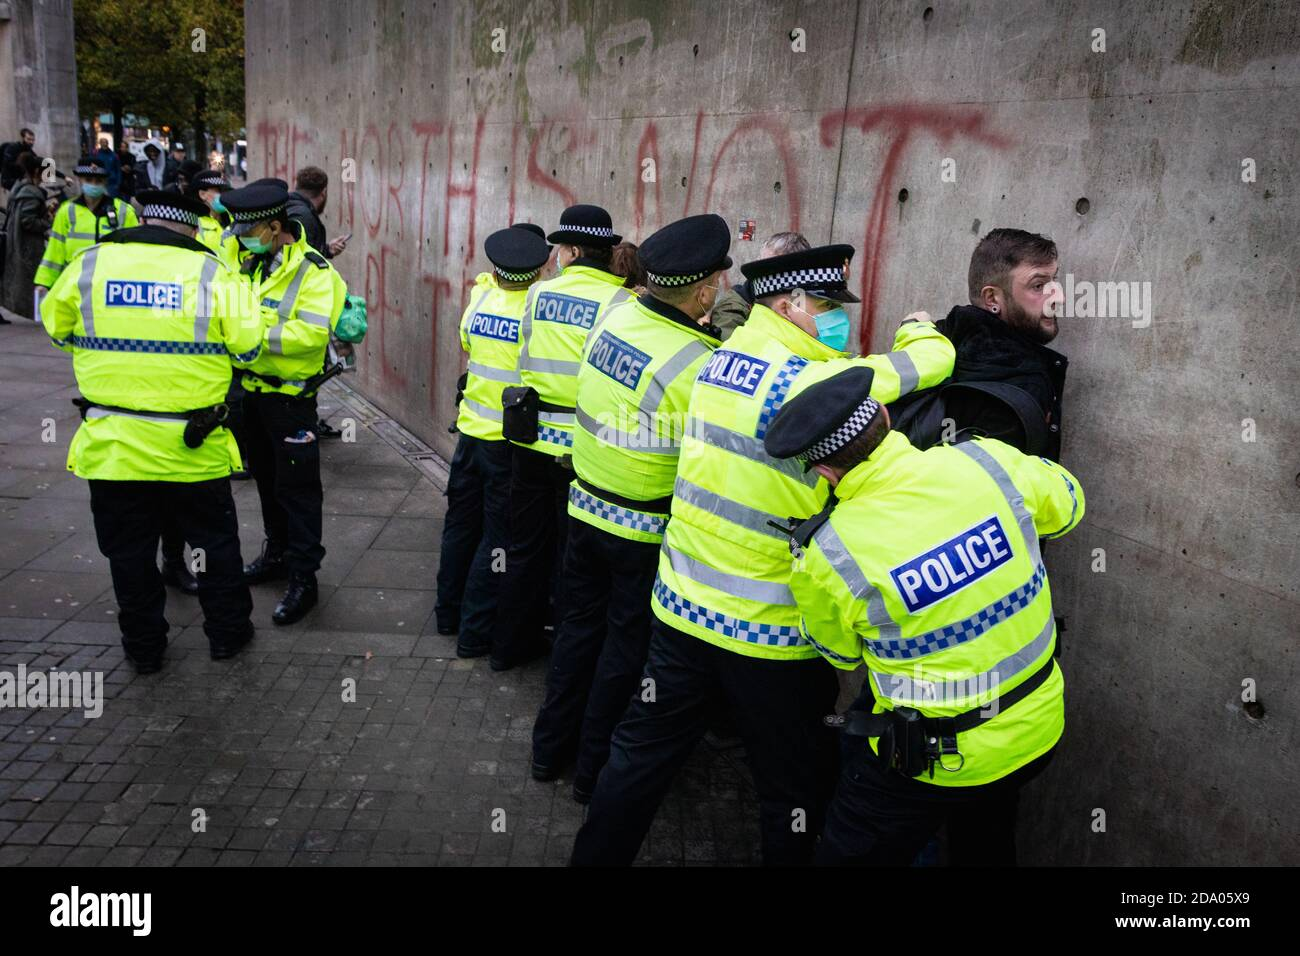 Manchester, UK. 08th Nov, 2020. A man is detained by the police during a anti-lockdown demonstration which was organised under the banner 'Rise Up Manchester'. New legislation was passed stopping protests of more than two people being able to protest at a time. Protests all across the country have been seen this weekend challenging the latest lockdown that was imposed on the country earlier in the week. Credit: Andy Barton/Alamy Live News Stock Photo